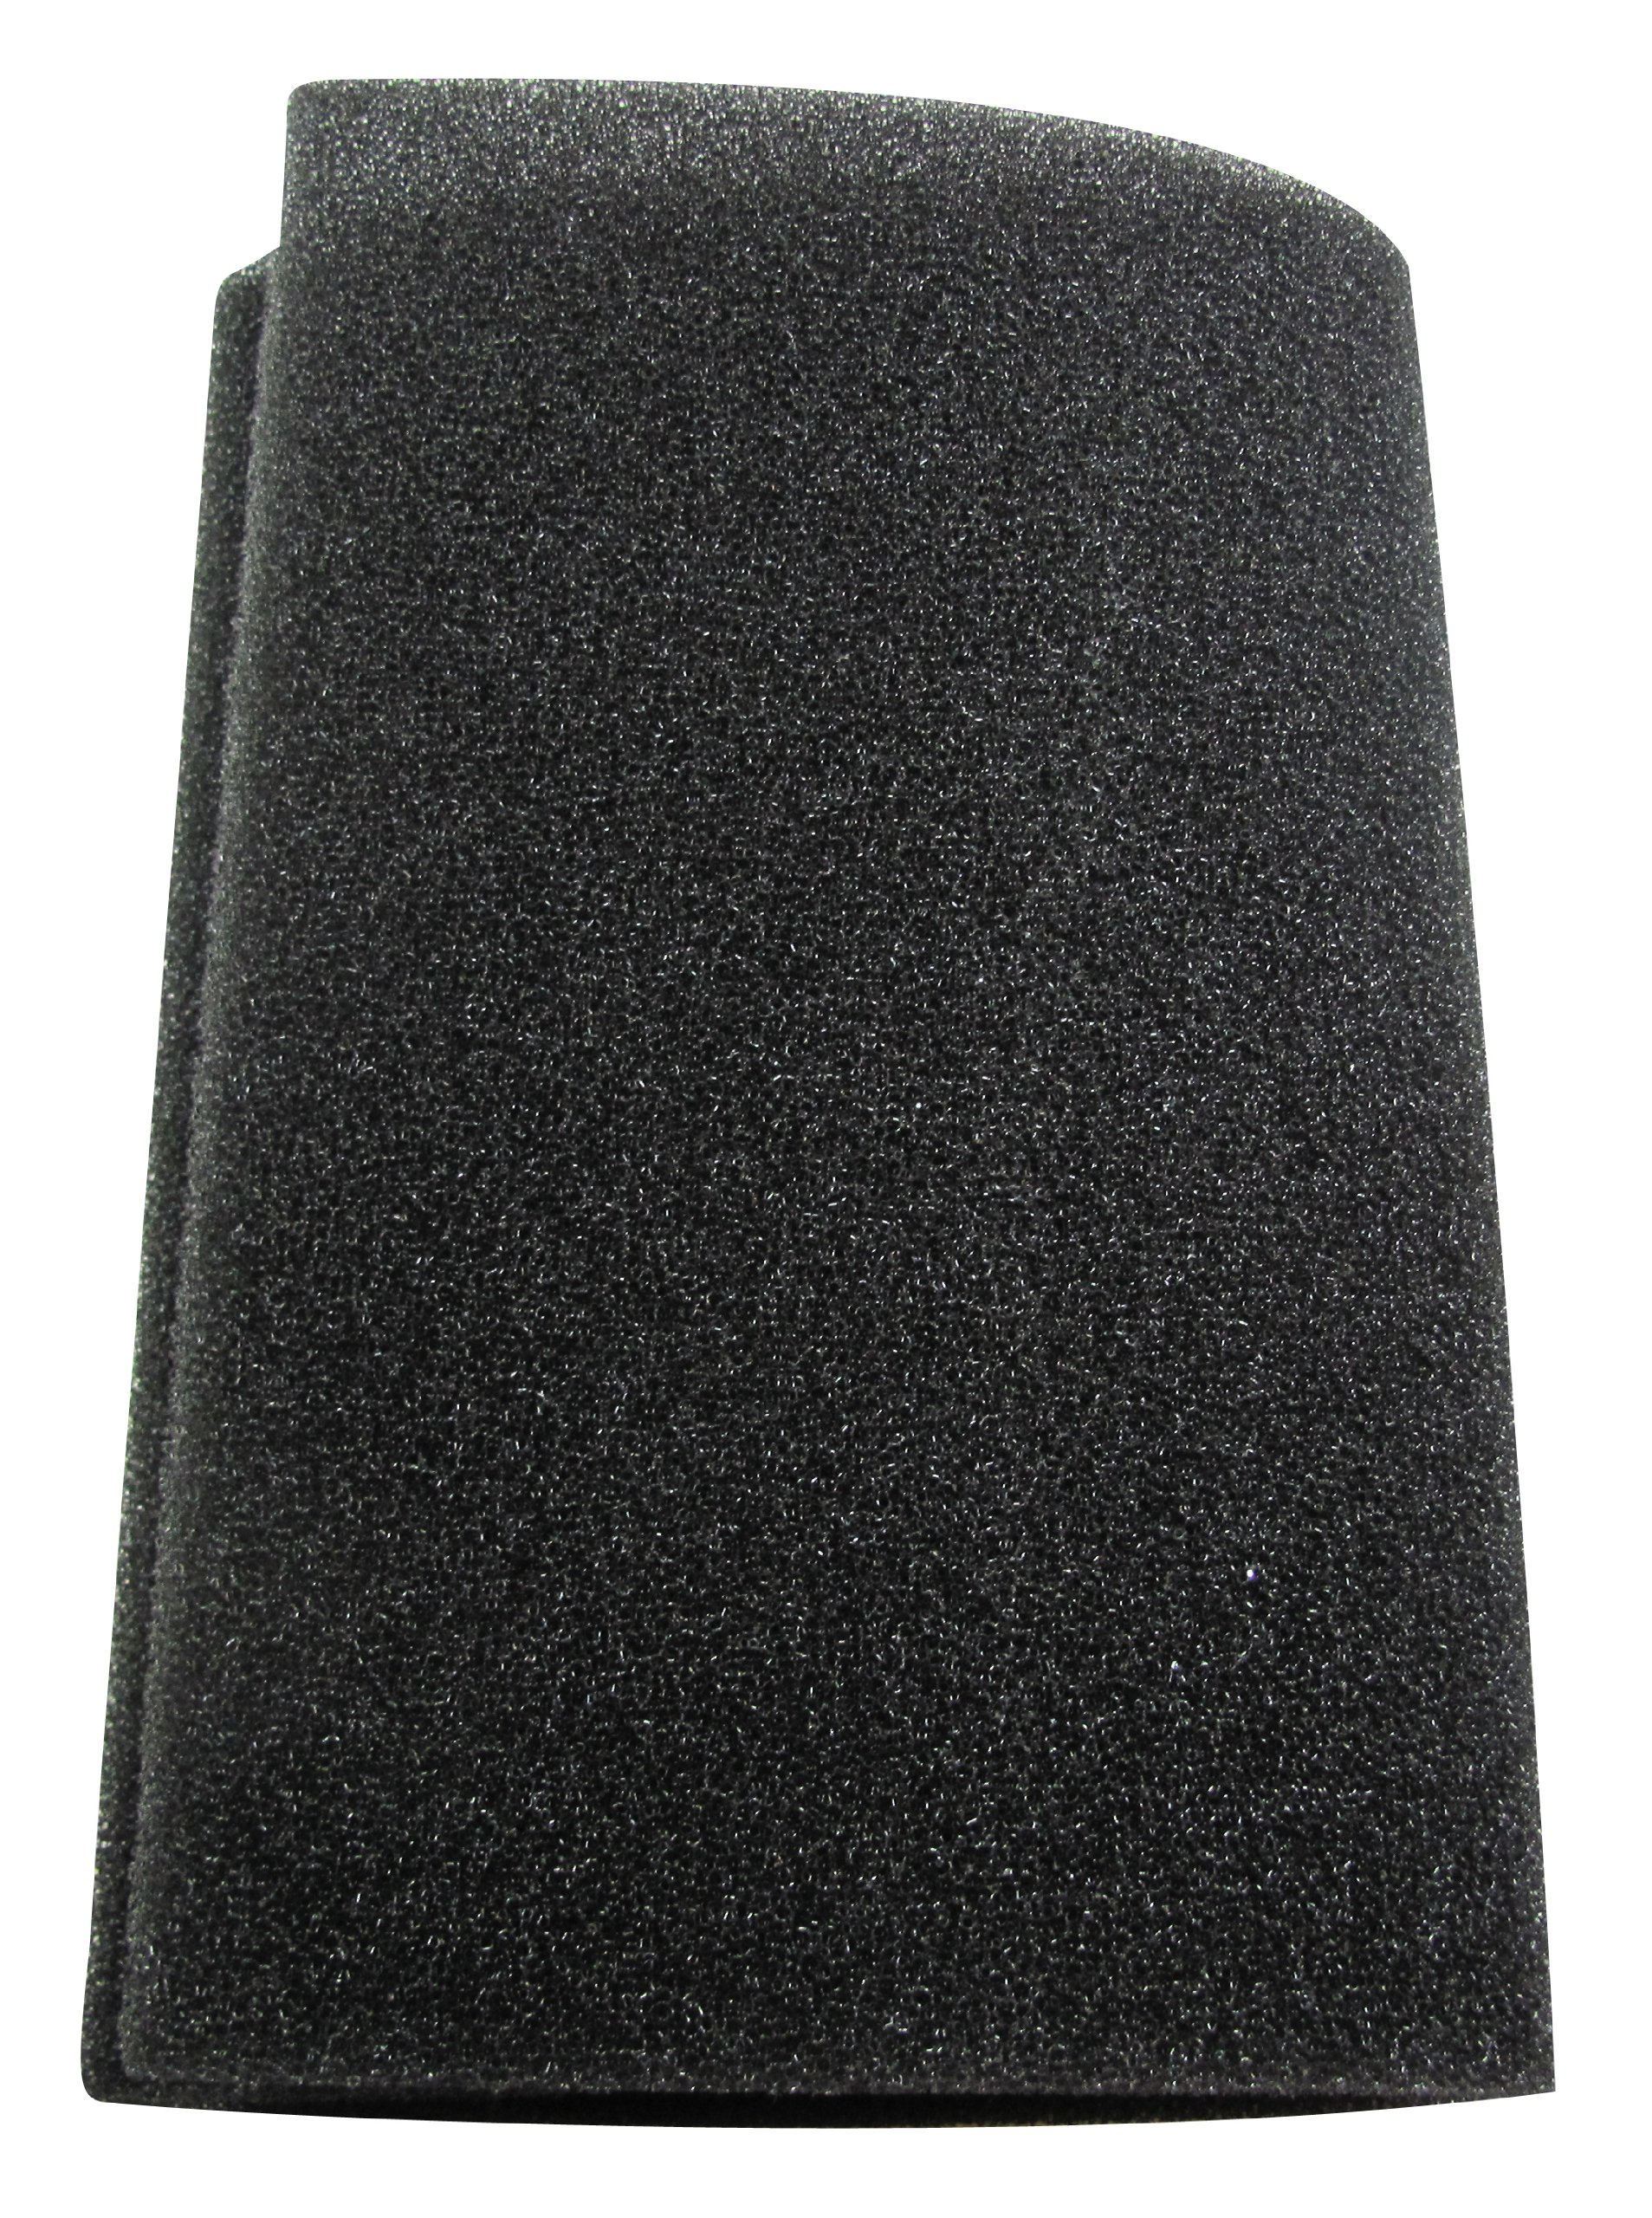 Uni Filter BF-2 12'' X 24'' X 3/8'' 30-PPI Black Coarse Foam by Uni Filter